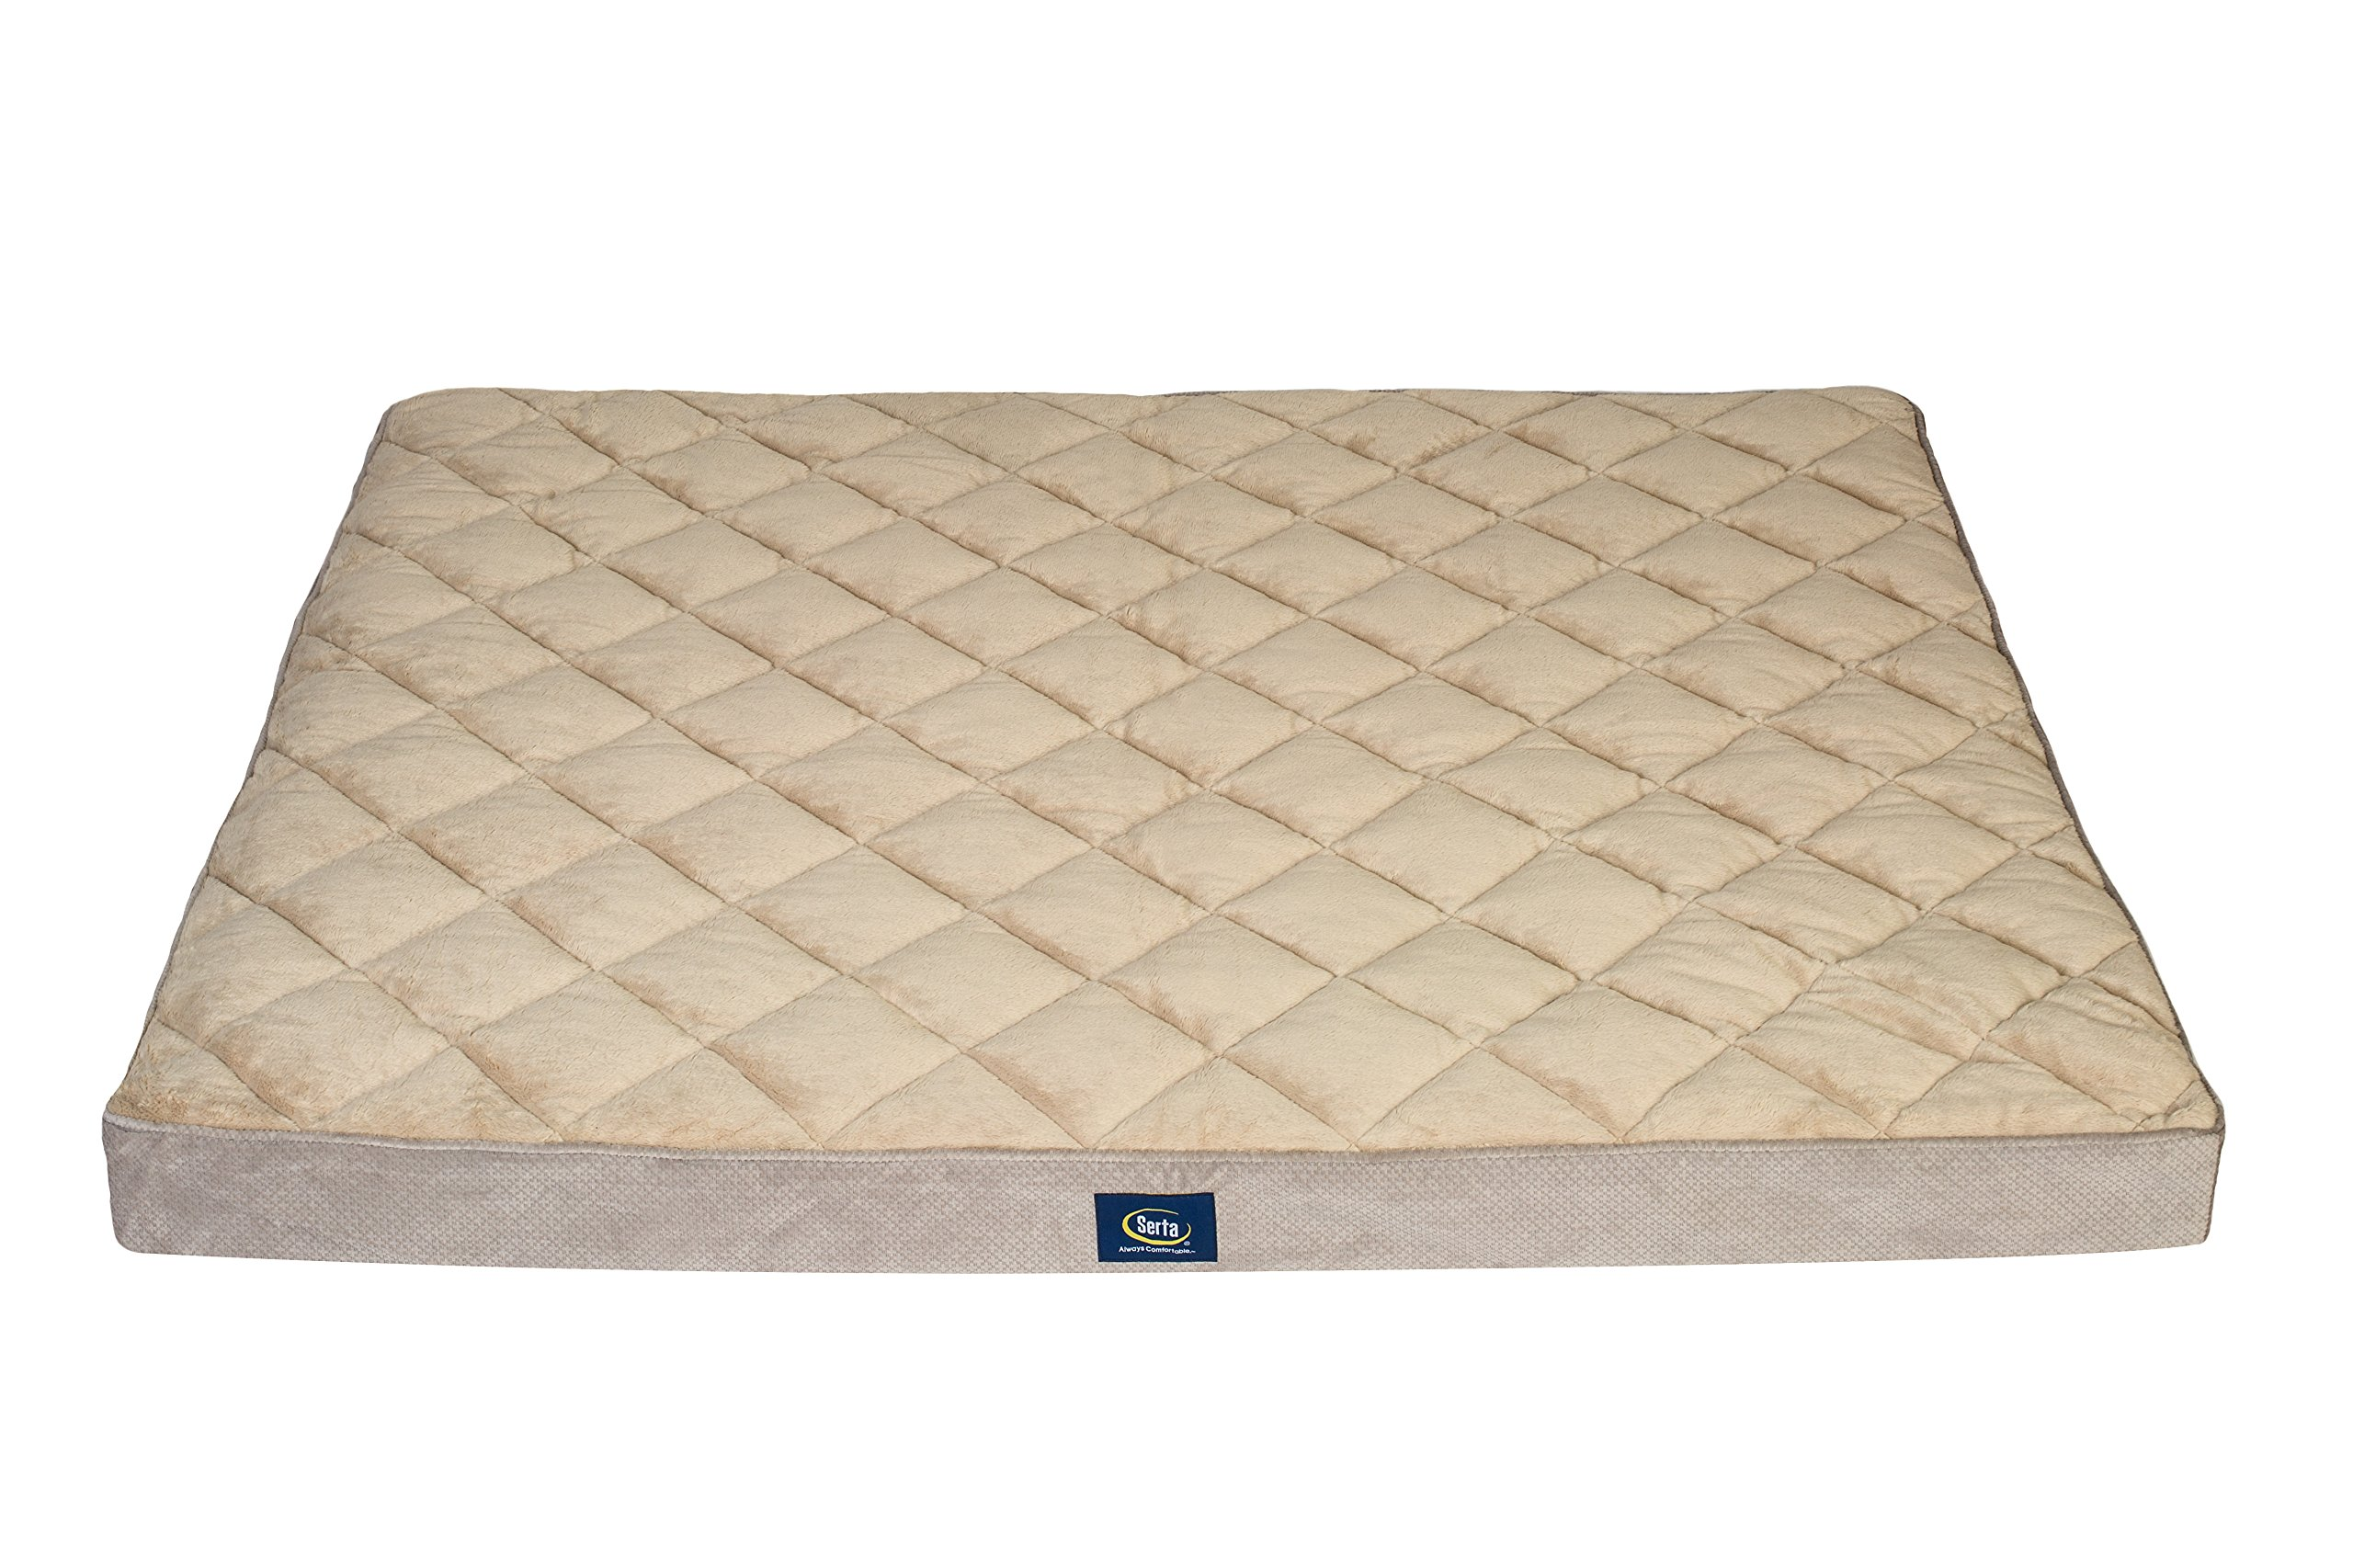 Serta Ortho Quilted Pillowtop Pet Bed, Extra Large, Grey